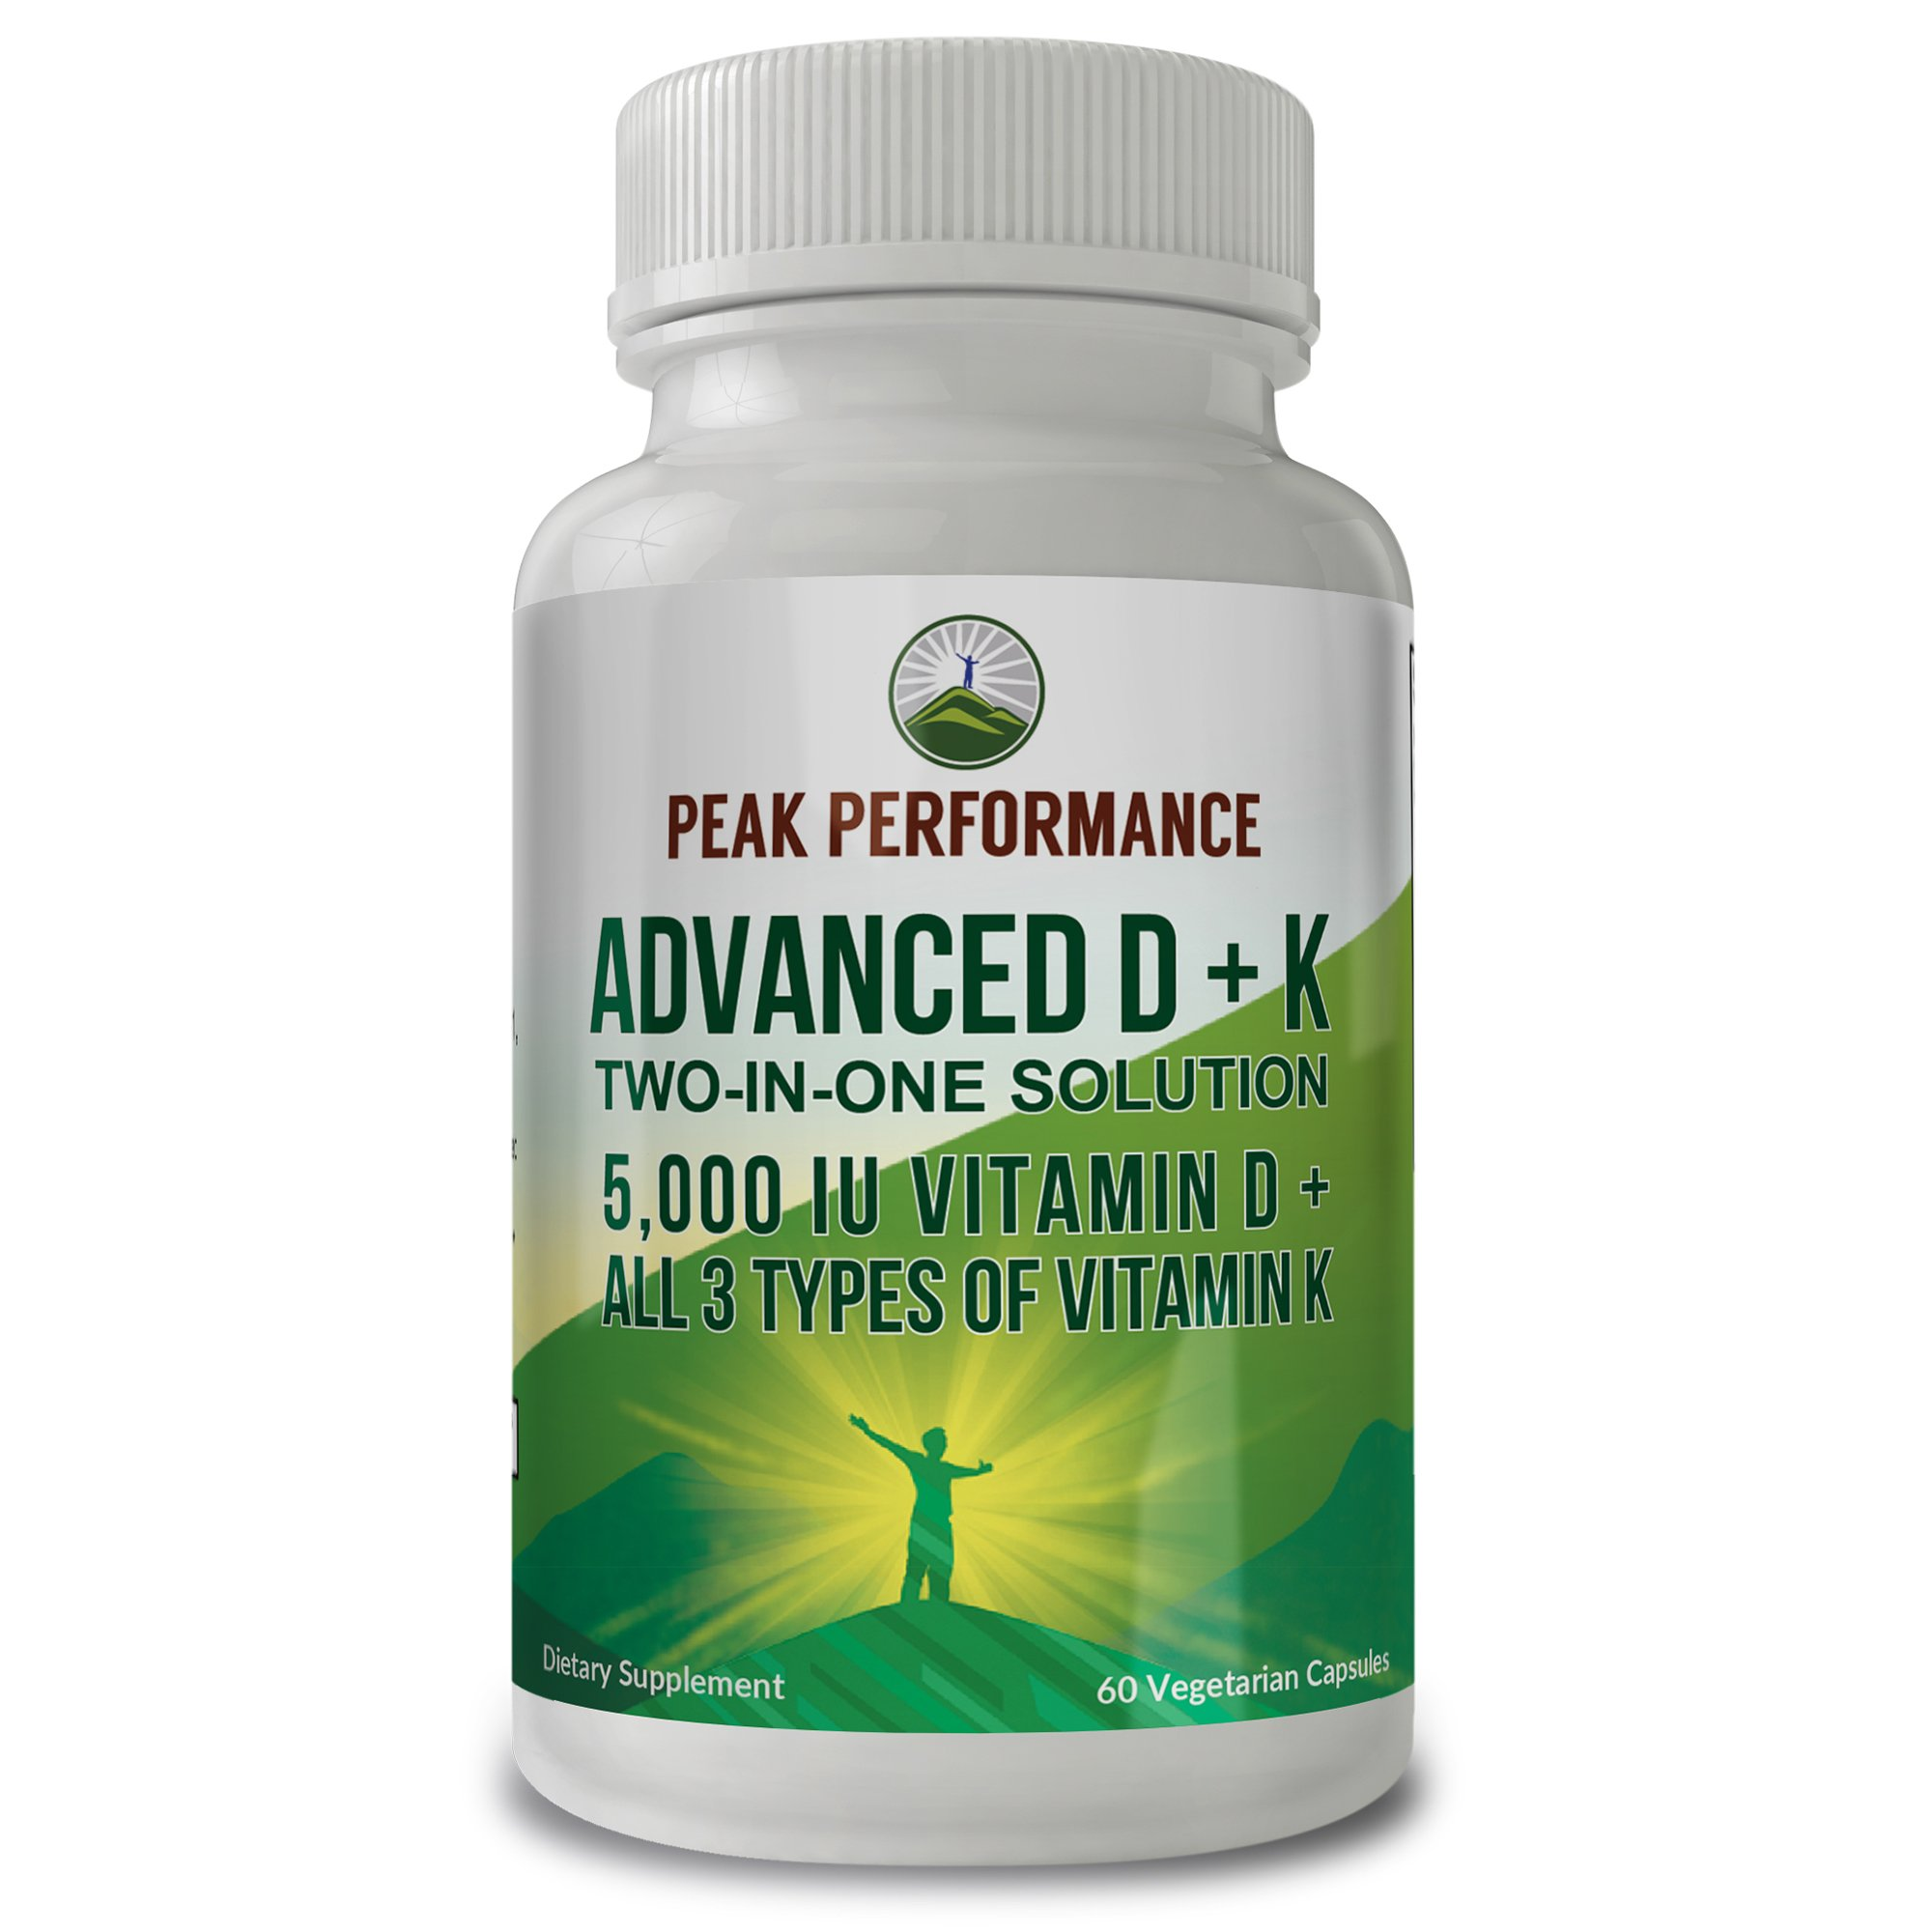 ADVANCED Vitamin D 5000 IU + ALL 3 Types Of Vitamin K By Peak Performance. Vitamin D3 and Vitamin K2 MK-7 (MK7) K2 MK4 K1 Supplement! 60 Small & Easy to Swallow Vegetable Capsules / Pills (5000 IU)